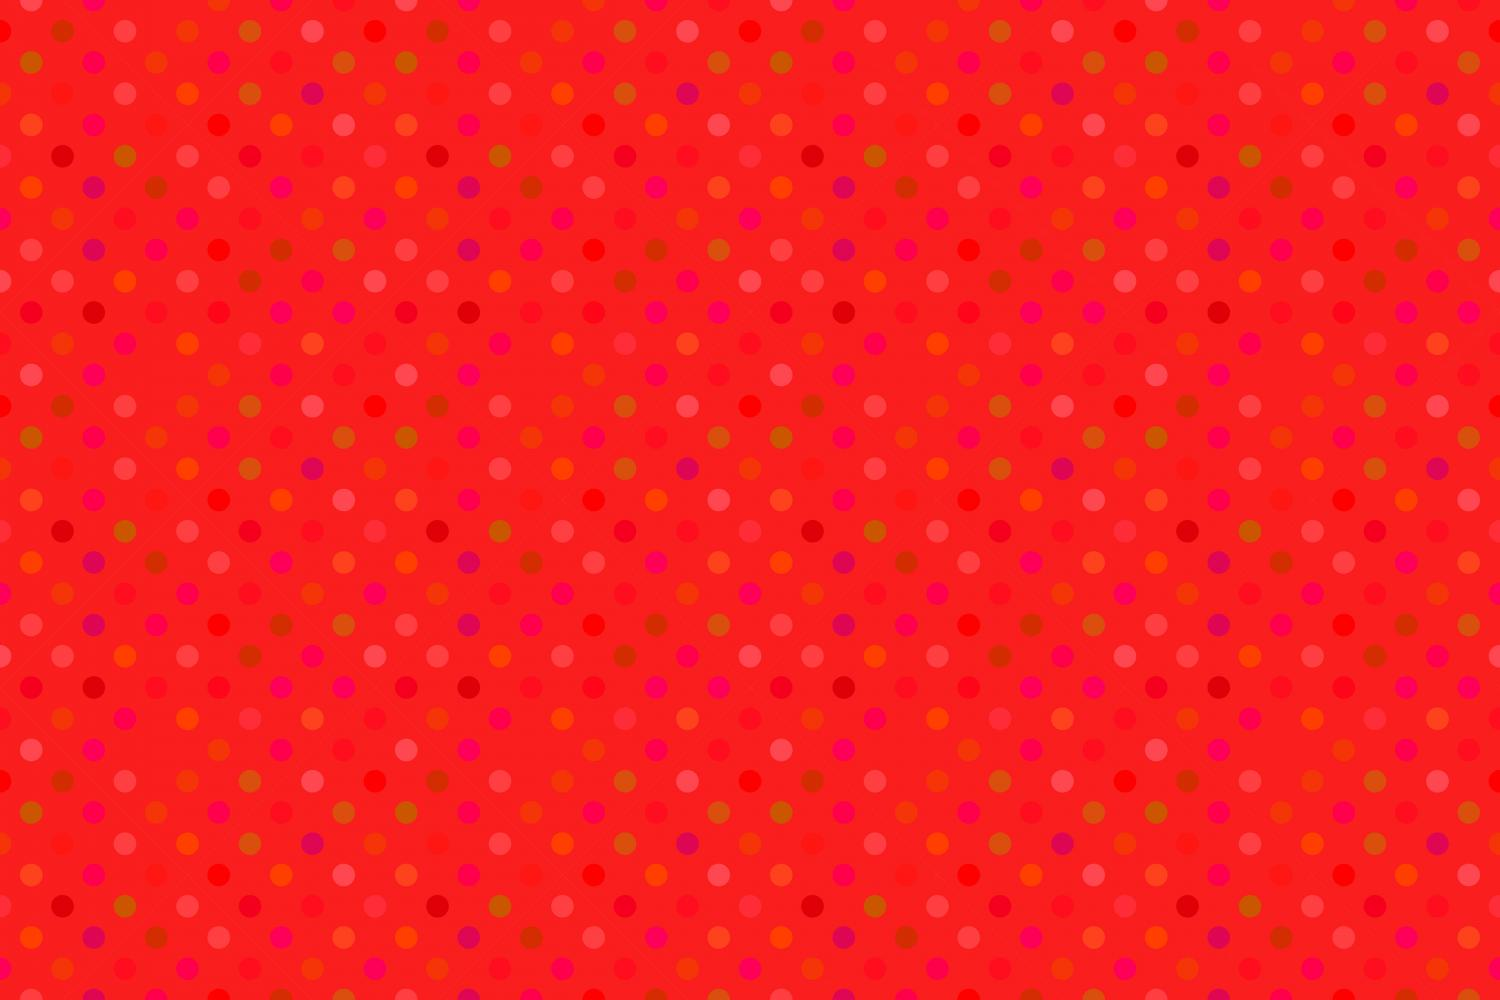 24 Seamless Red Dot Patterns example image 18